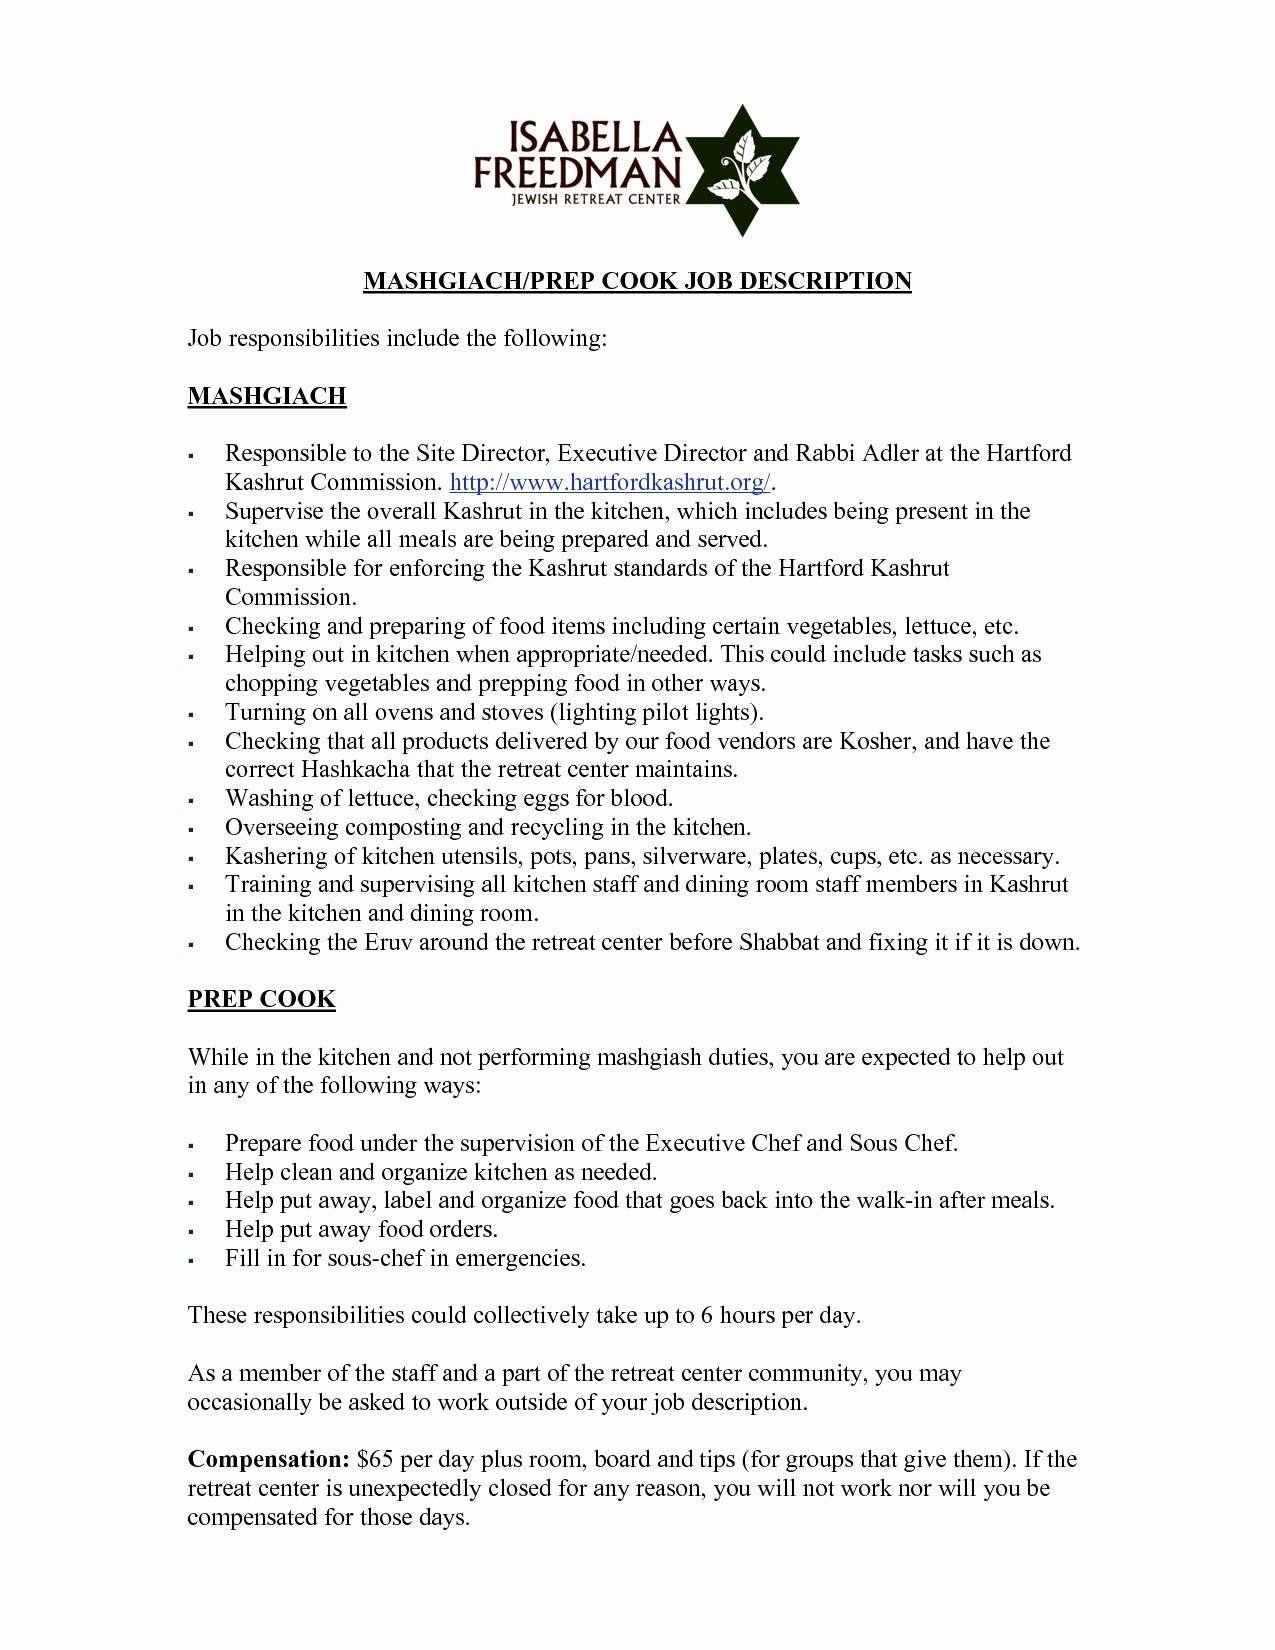 I Want to Buy Your House Letter Template - Resume Letter Doc New Resume Doc Template Luxury Resume and Cover